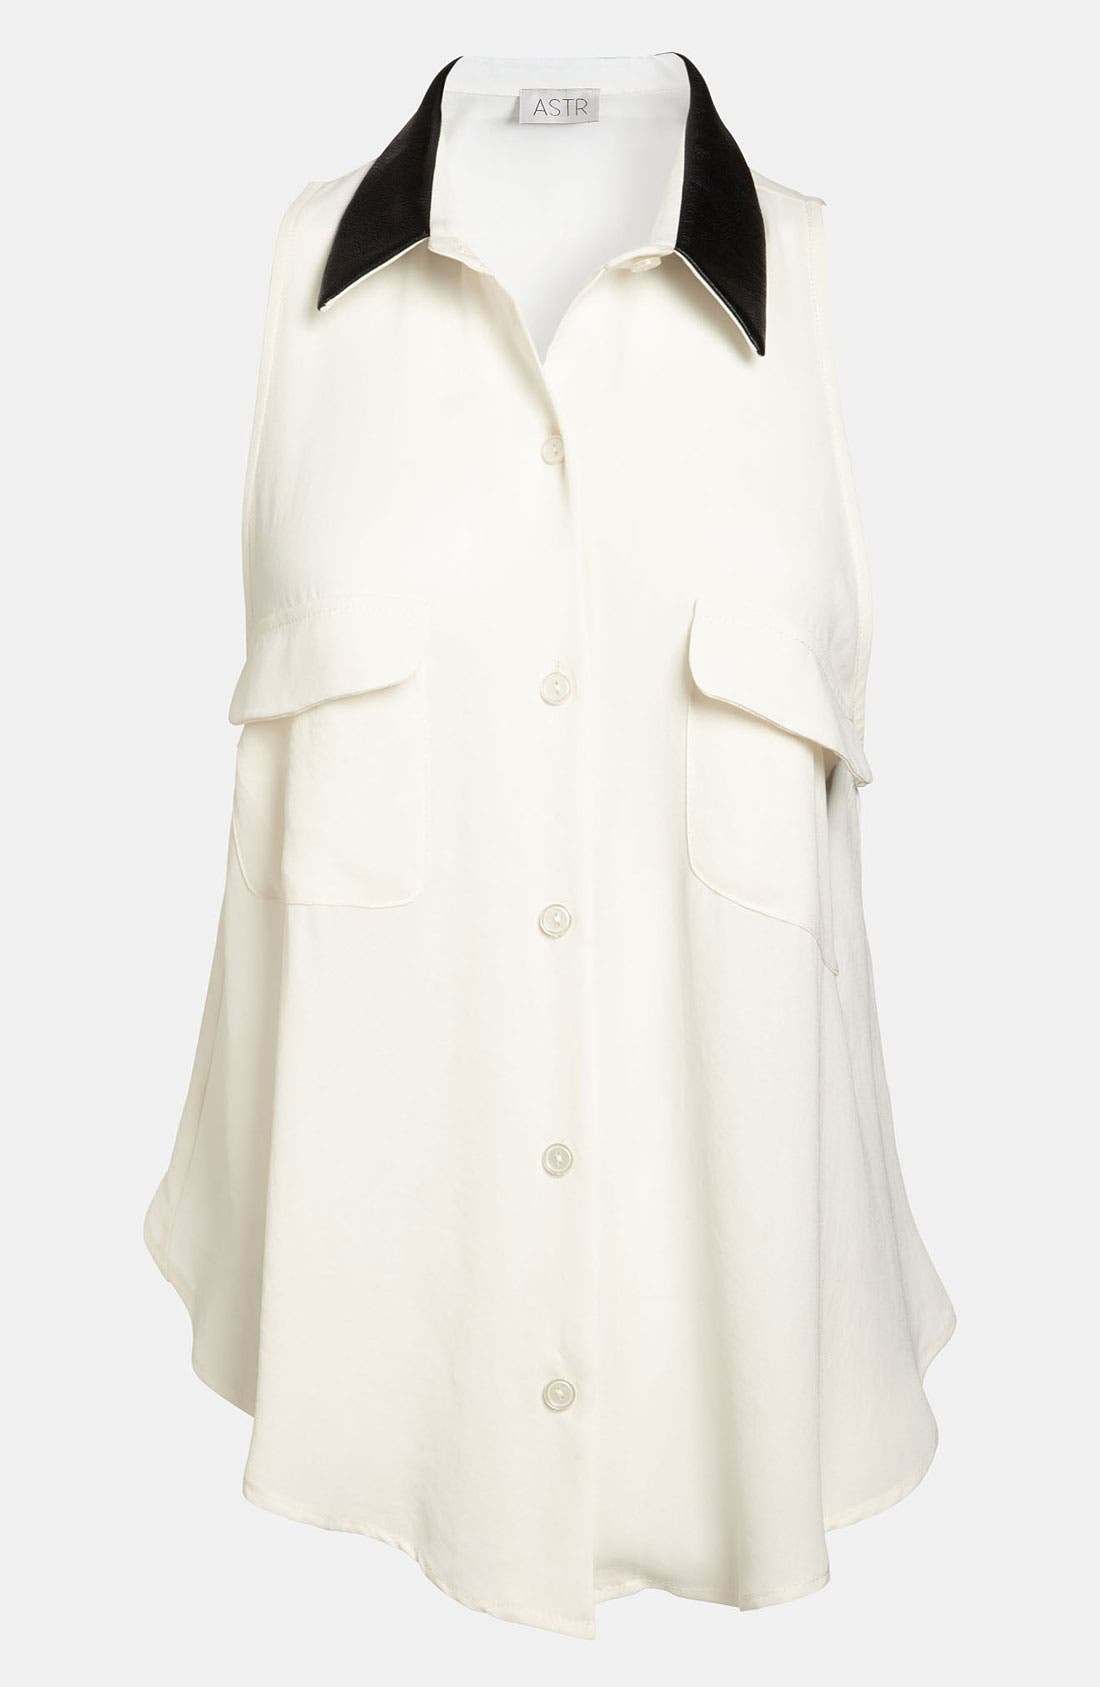 Alternate Image 1 Selected - ASTR Faux Leather Collar Shirt